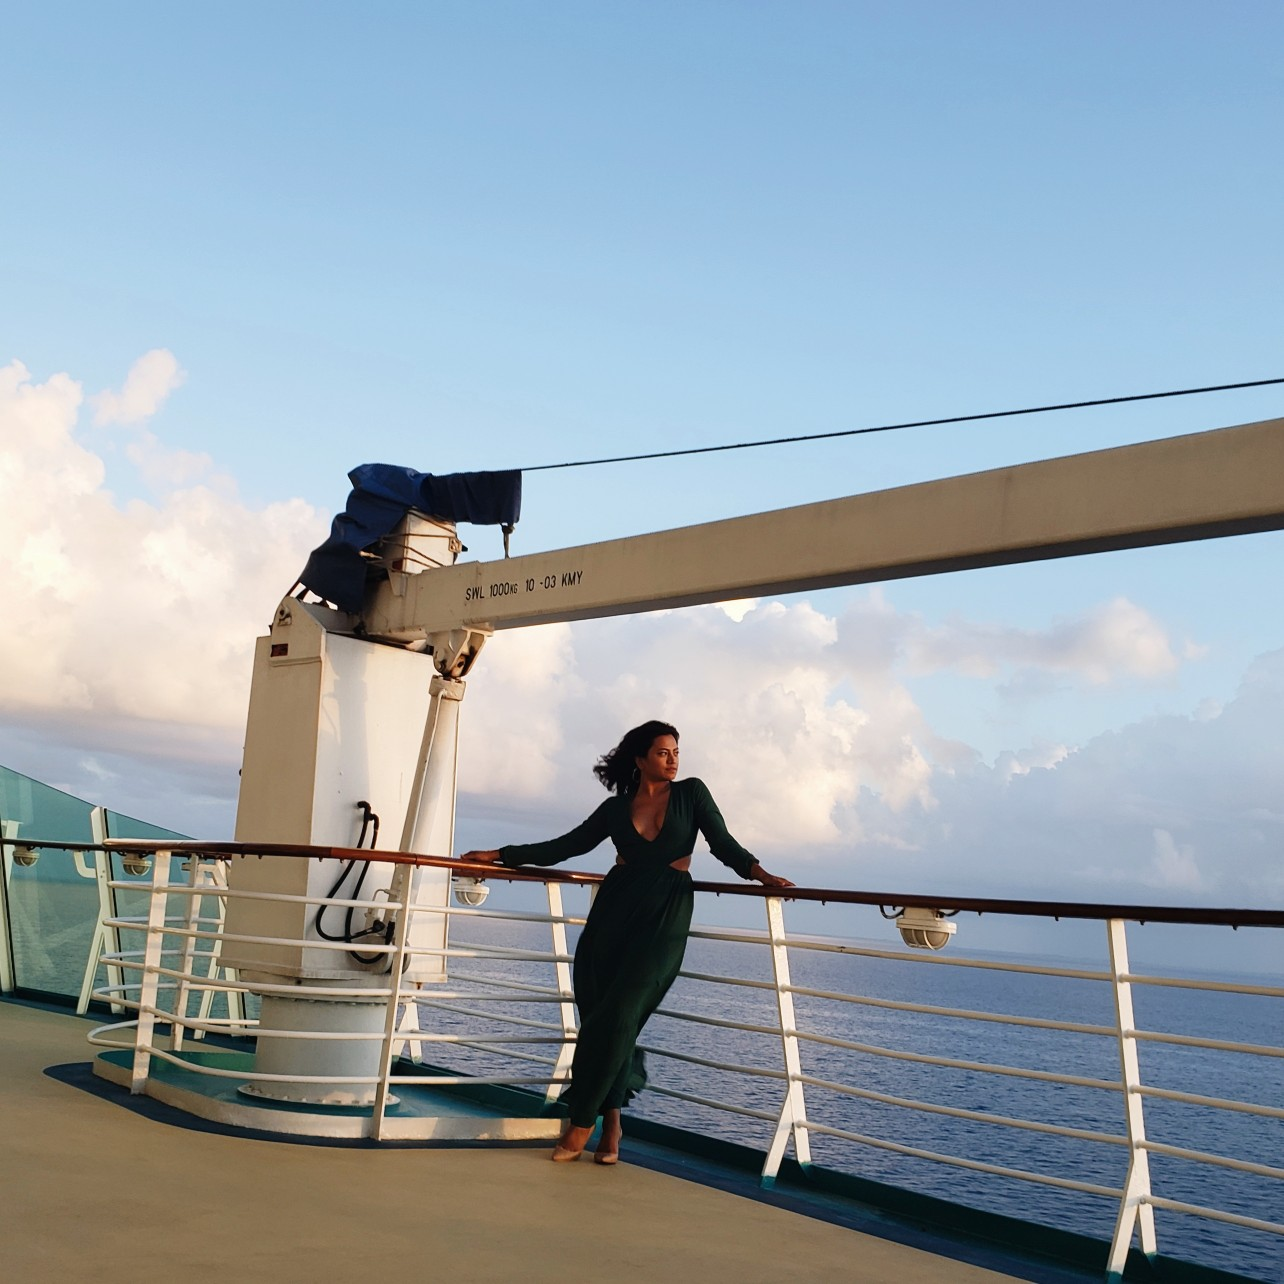 Travel Blogger Afroza Khan Formal Maxi Cruise Style on Royal Caribbean Cruise